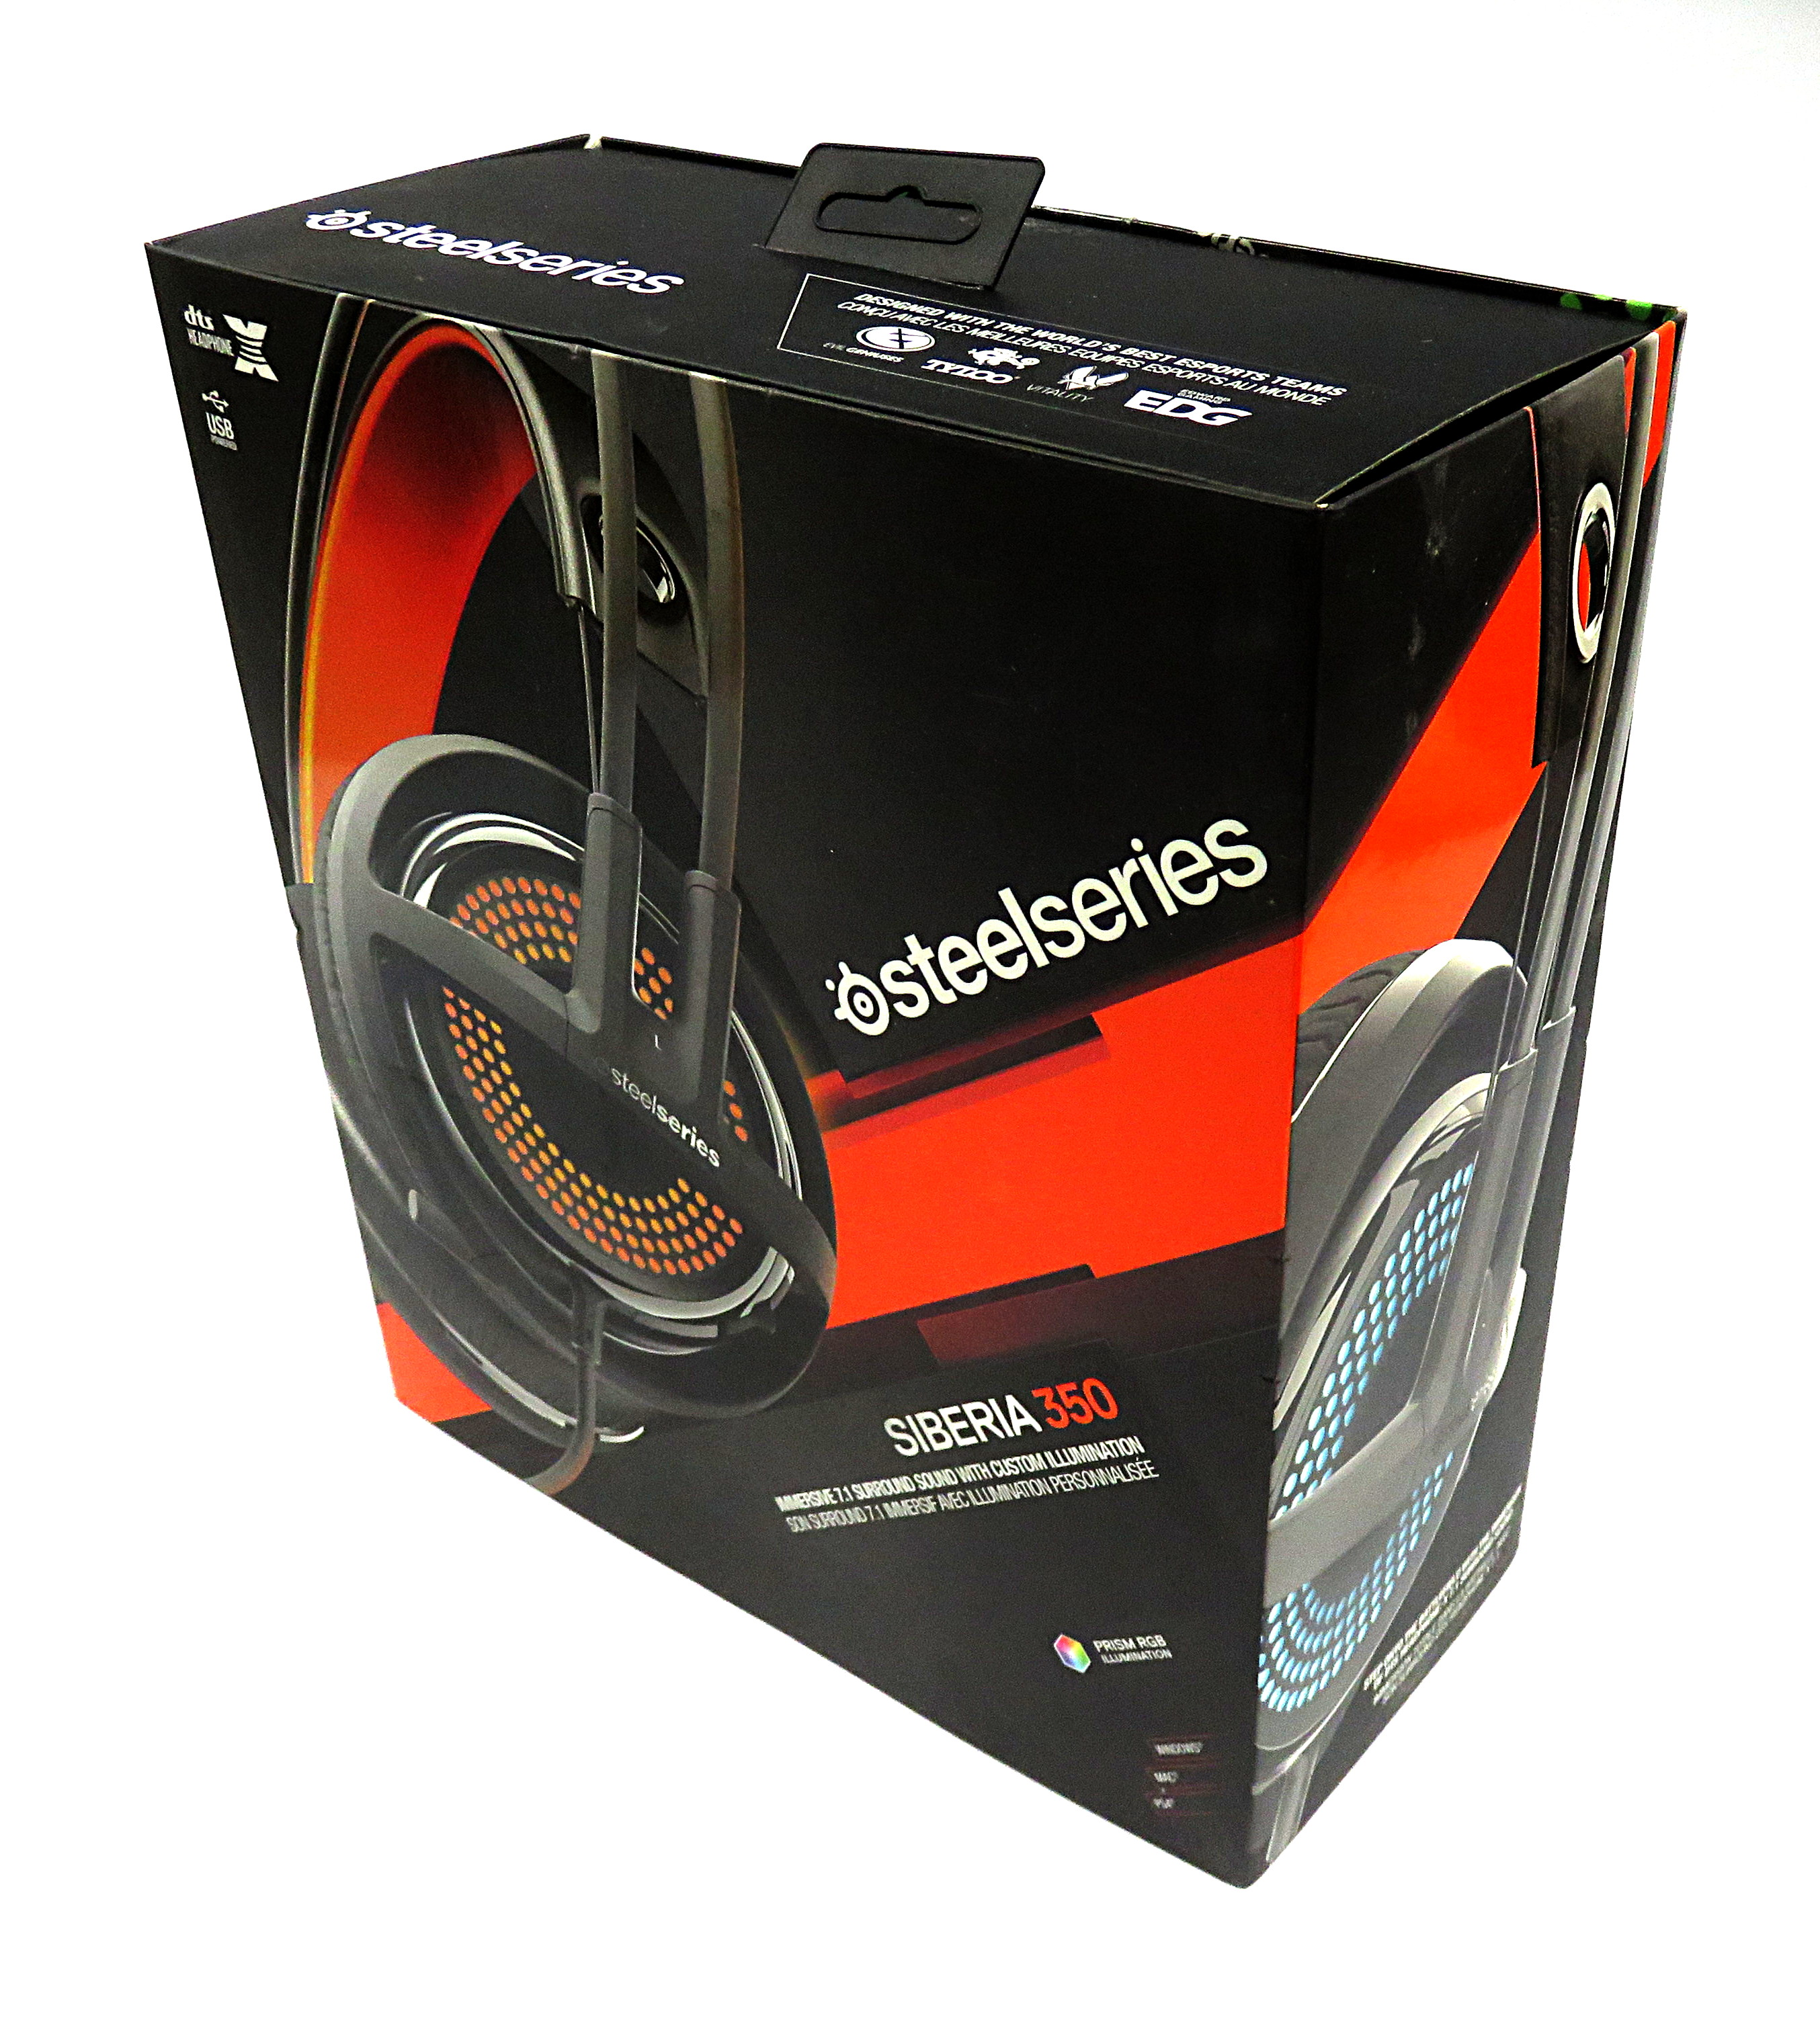 64e6a5a74c4 Steelseries Siberia 350 Wired USB Gaming Headset 51202 w/ RGB Lighting,  Black. Out of Stock